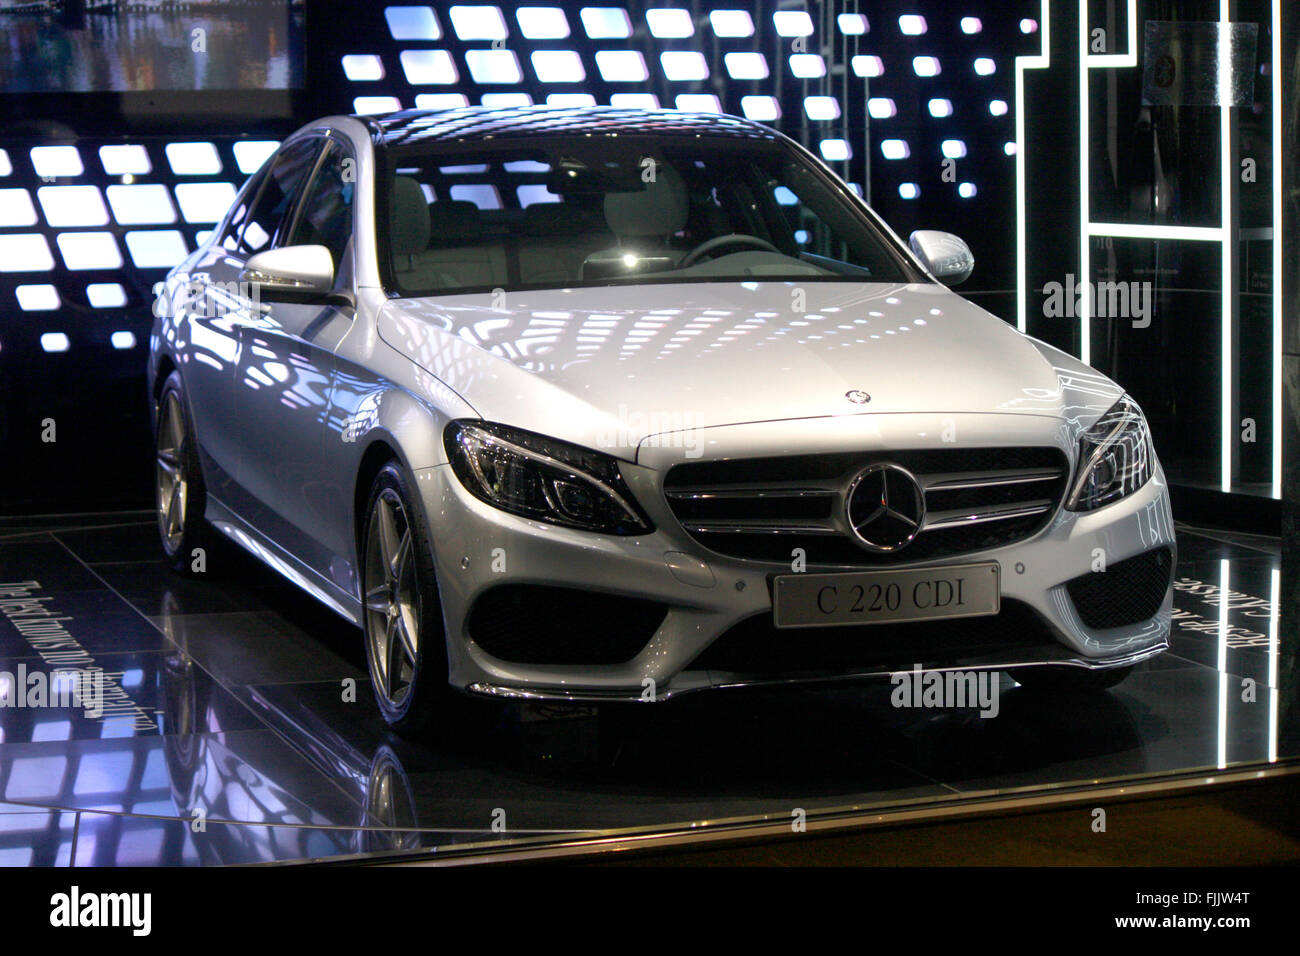 Markenname Mercedes Benz C Klasse Berlin Stock Photo 97530520